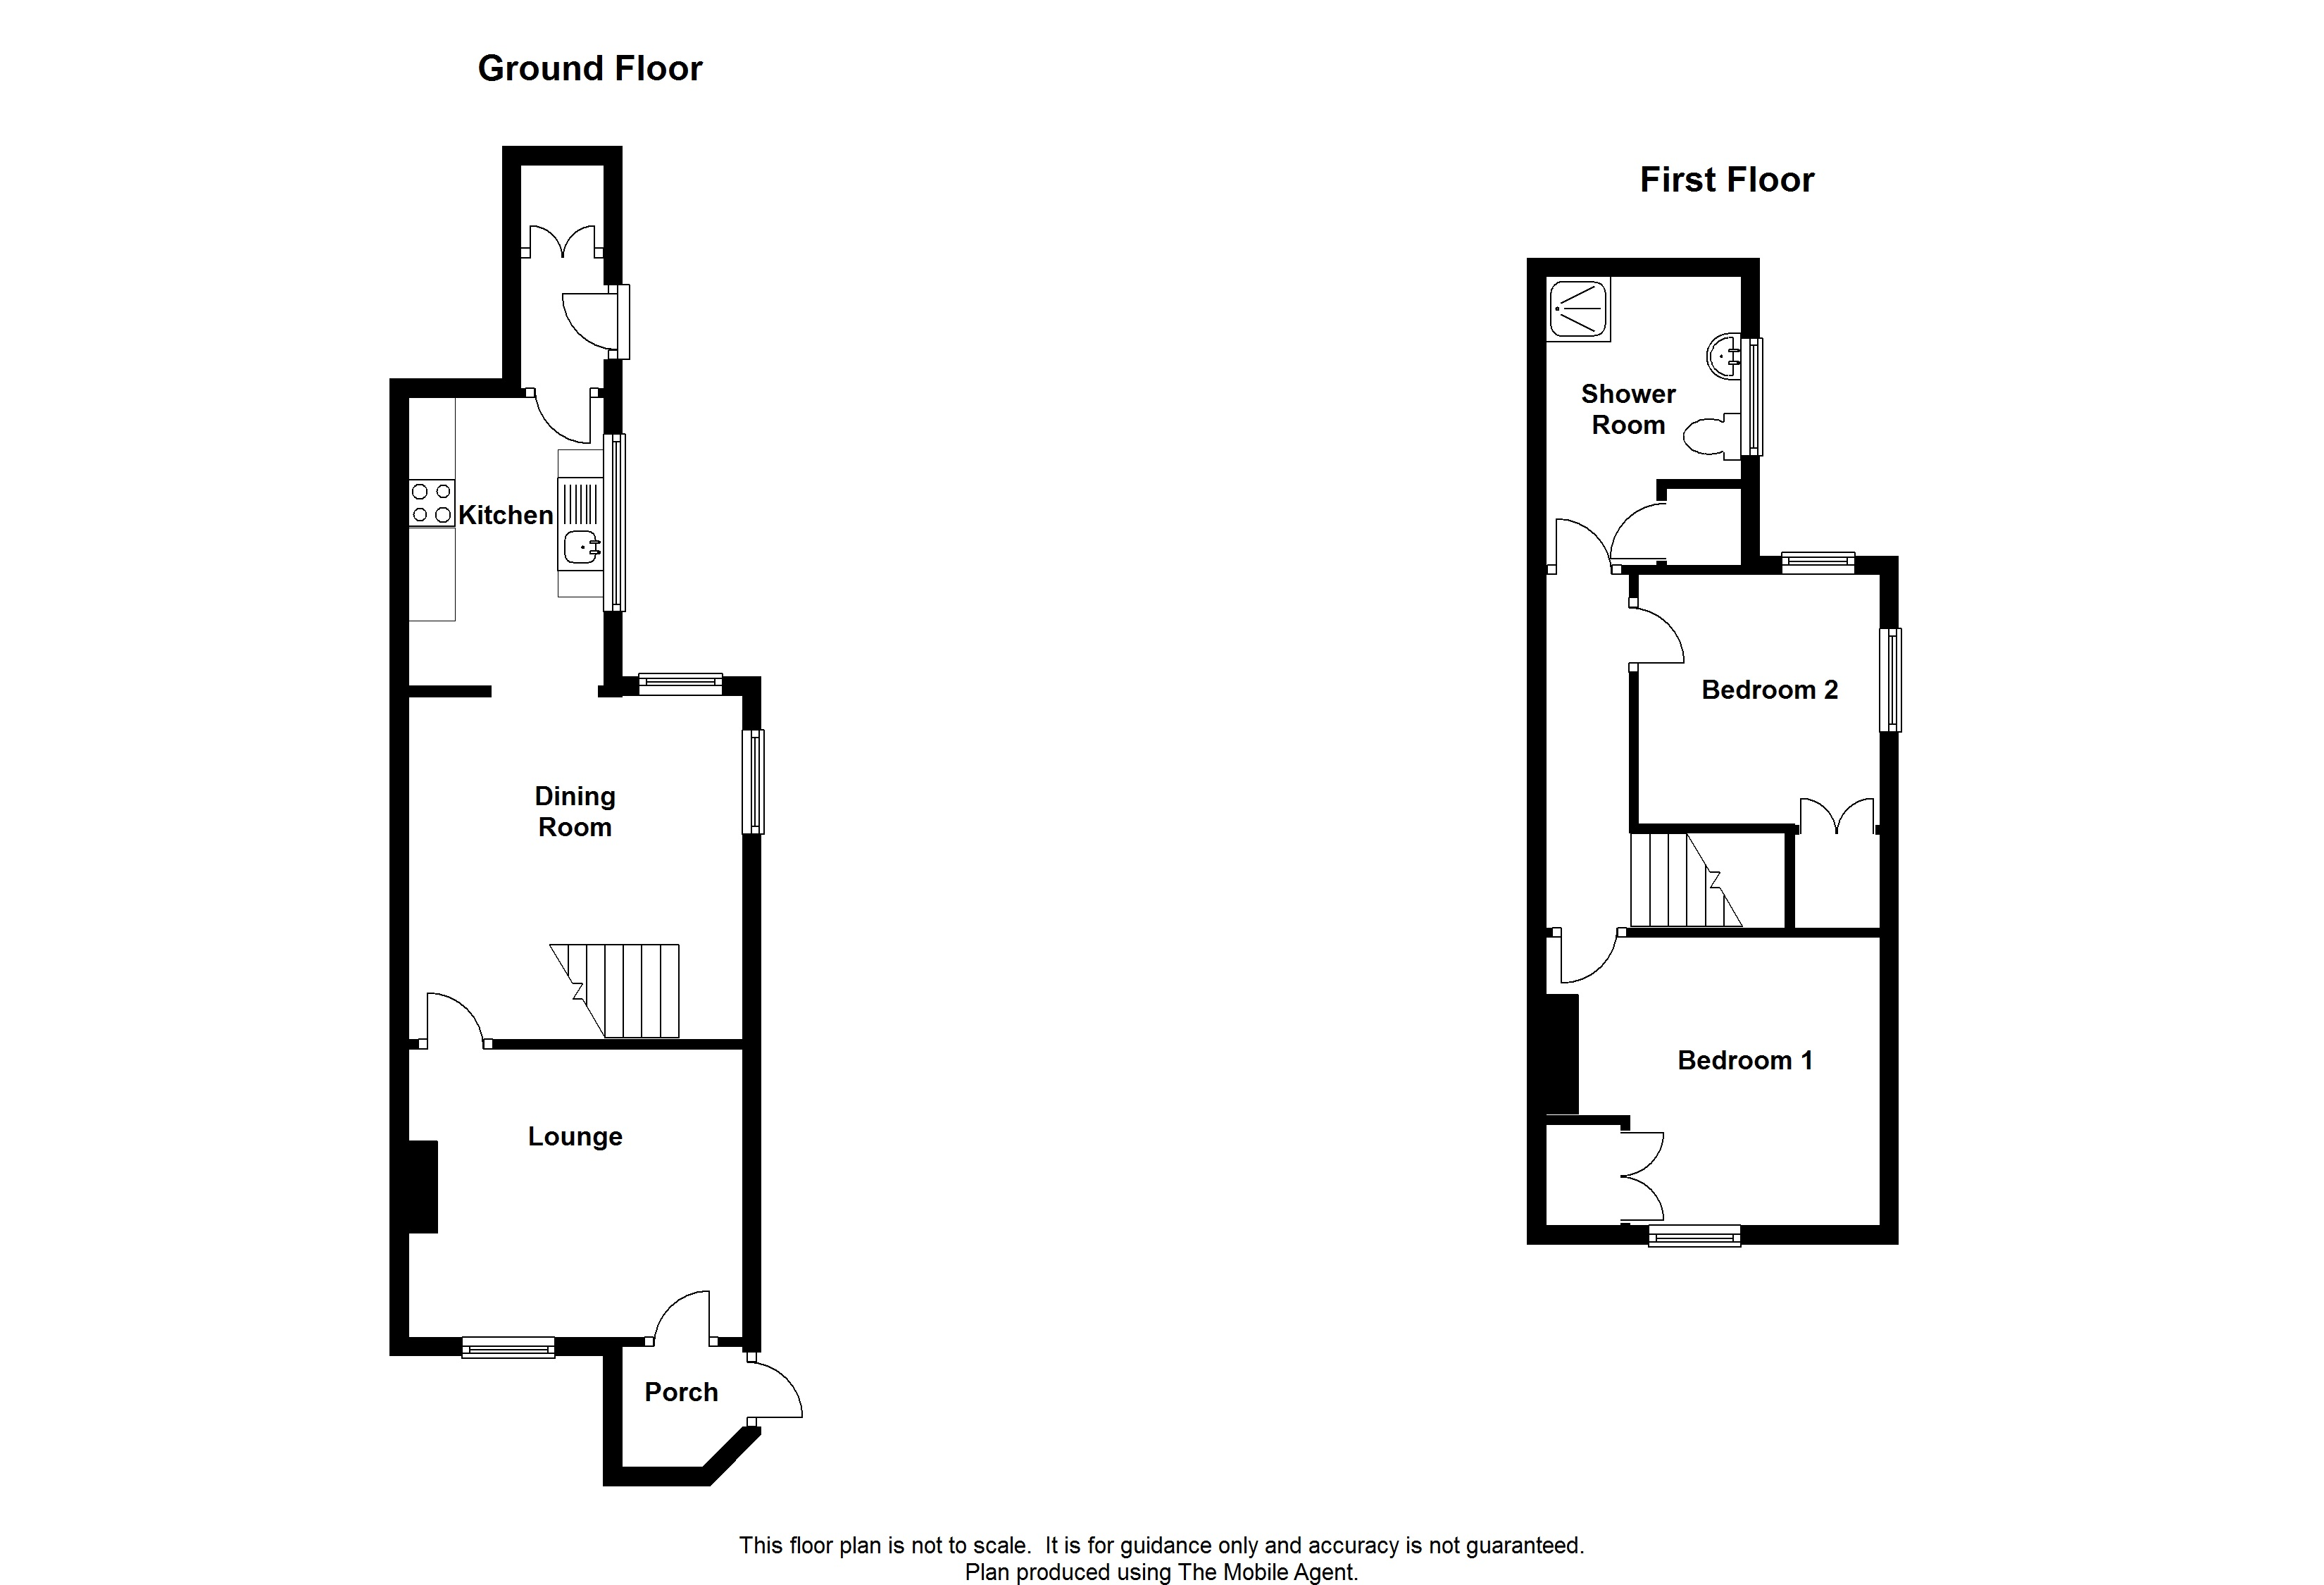 Floorplans For Station Road, Charing